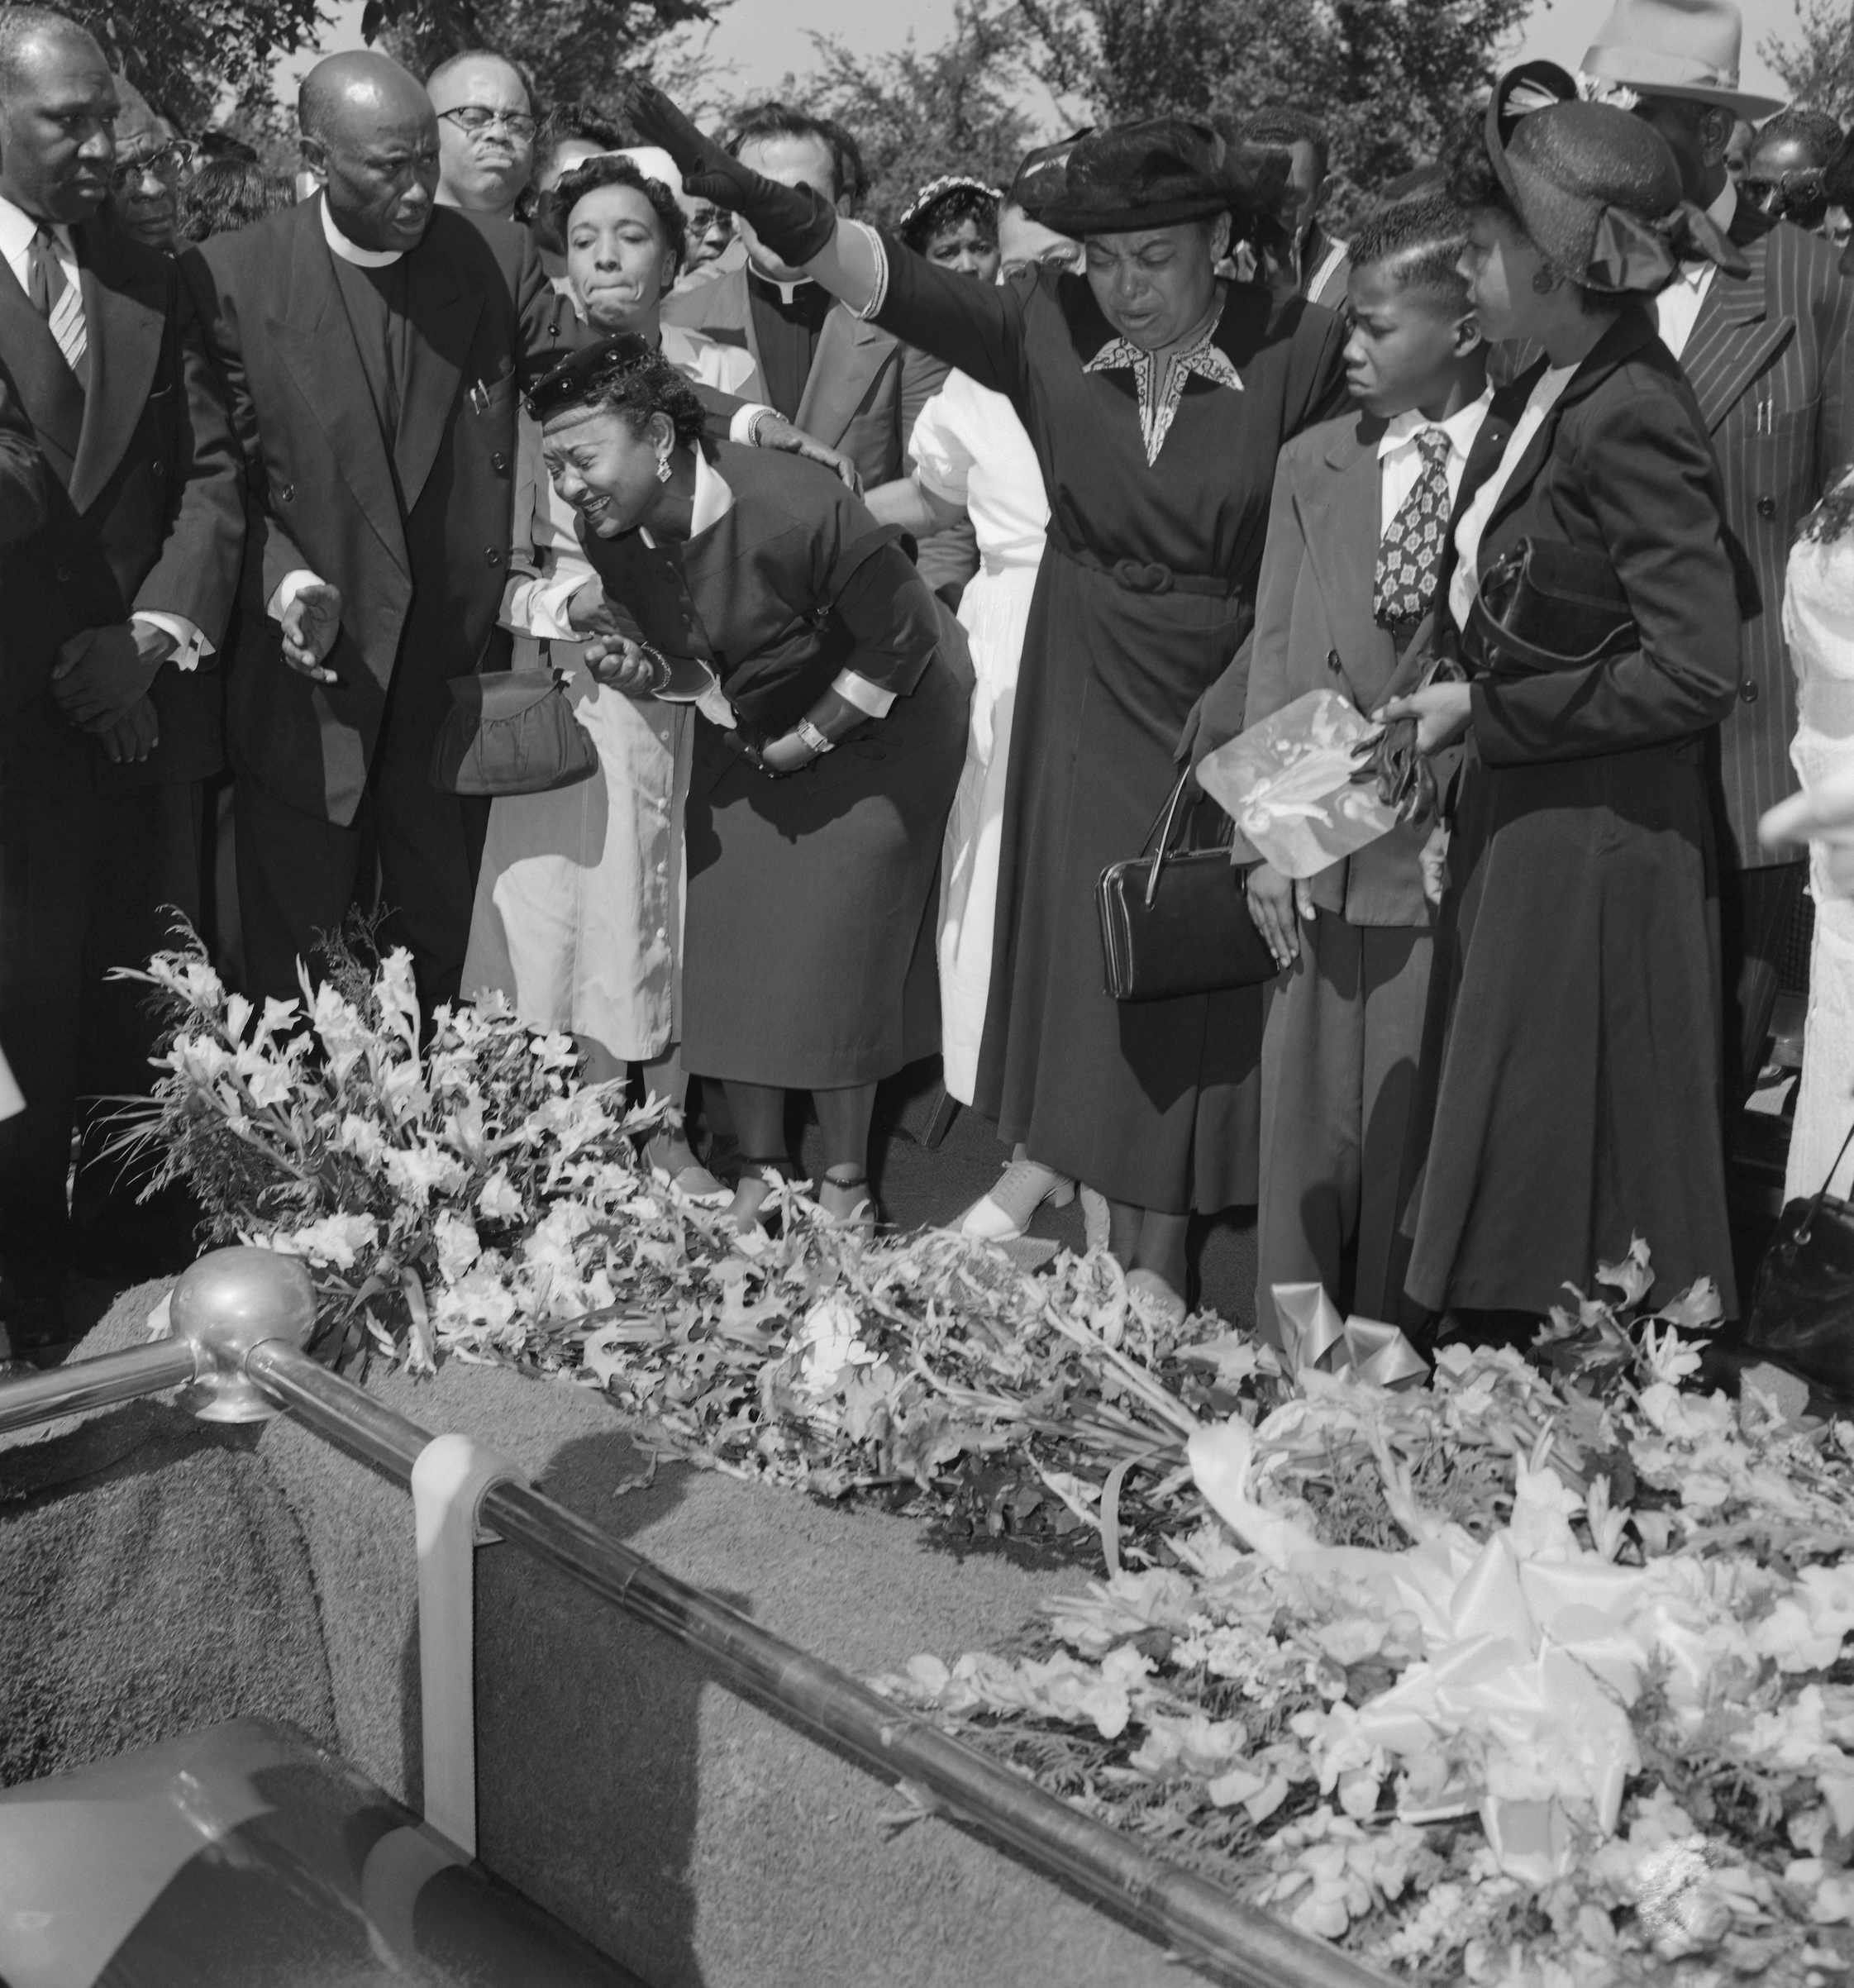 Friends restrain Emmett Till's grief-stricken mother (left) as her son's body is lowered into the grave.